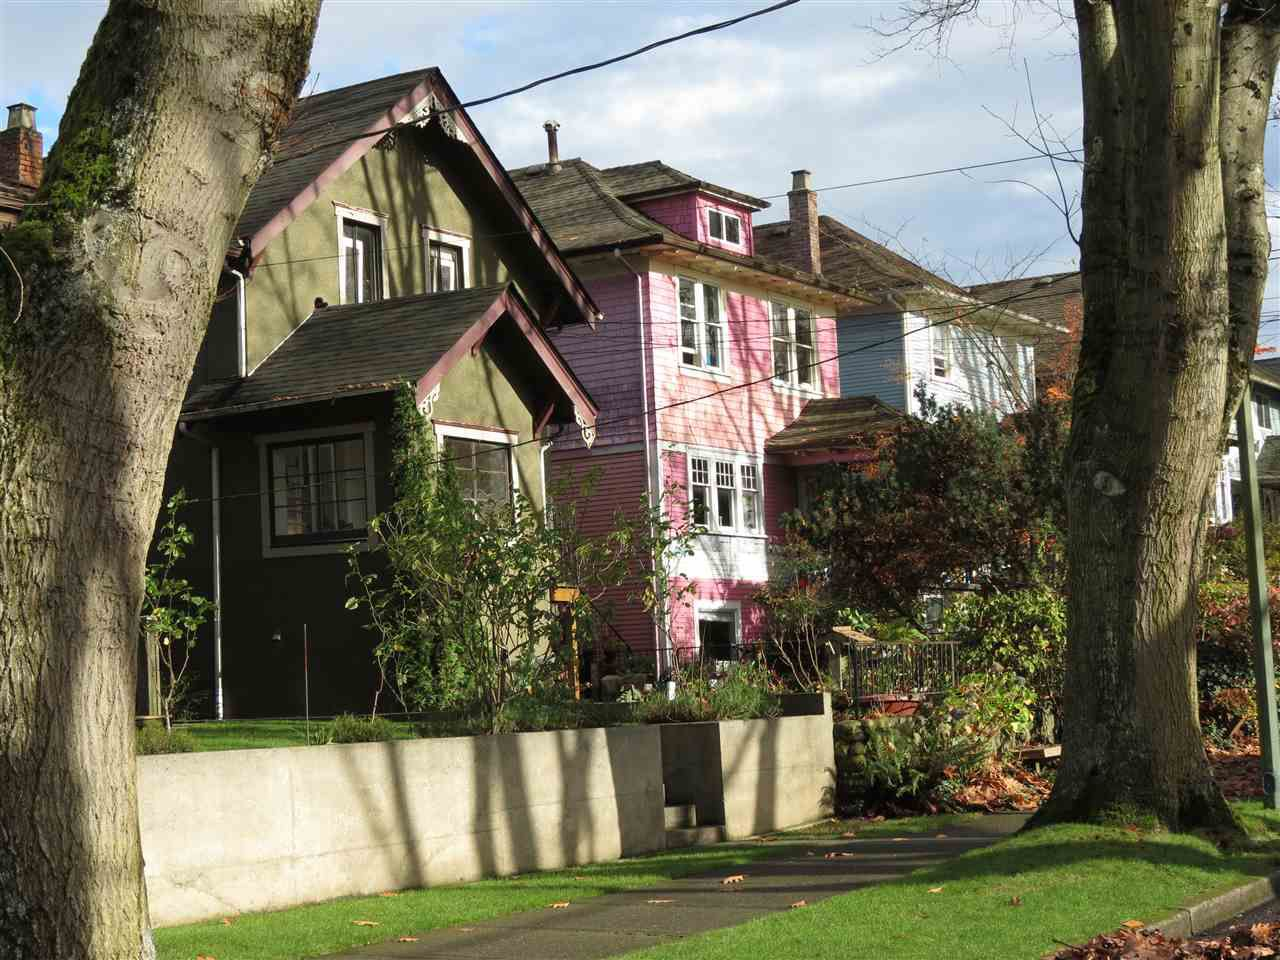 Main Photo: 2227 E 7TH Avenue in Vancouver: Grandview VE House for sale (Vancouver East)  : MLS®# R2125130